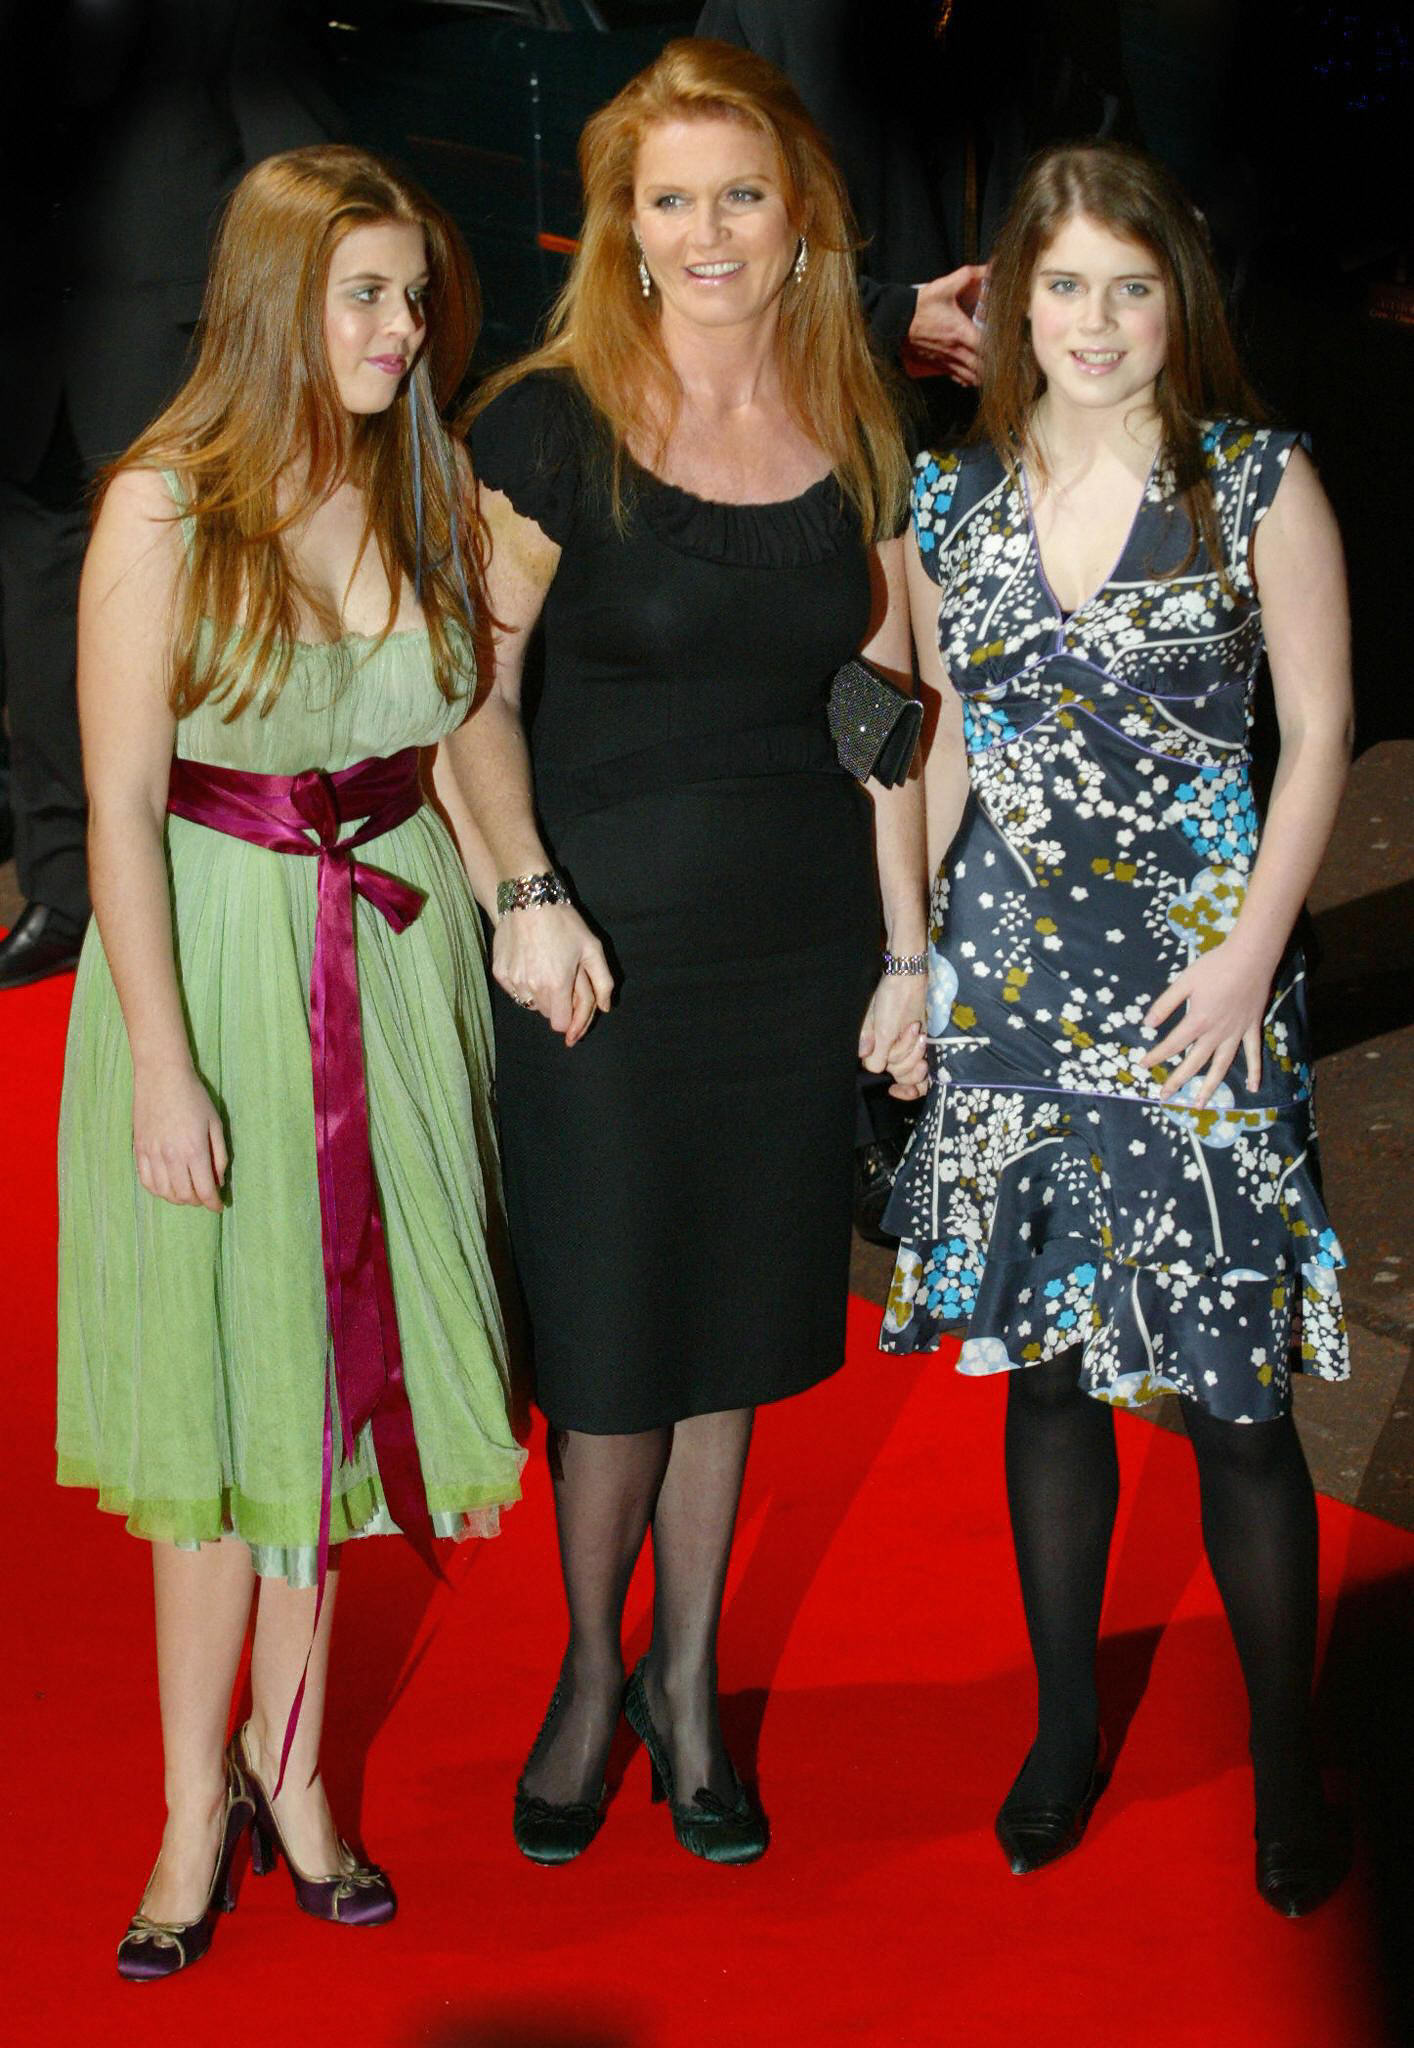 Sarah Ferguson, Princess Beatrice, and Princess Eugenie arrive on the red carpet.